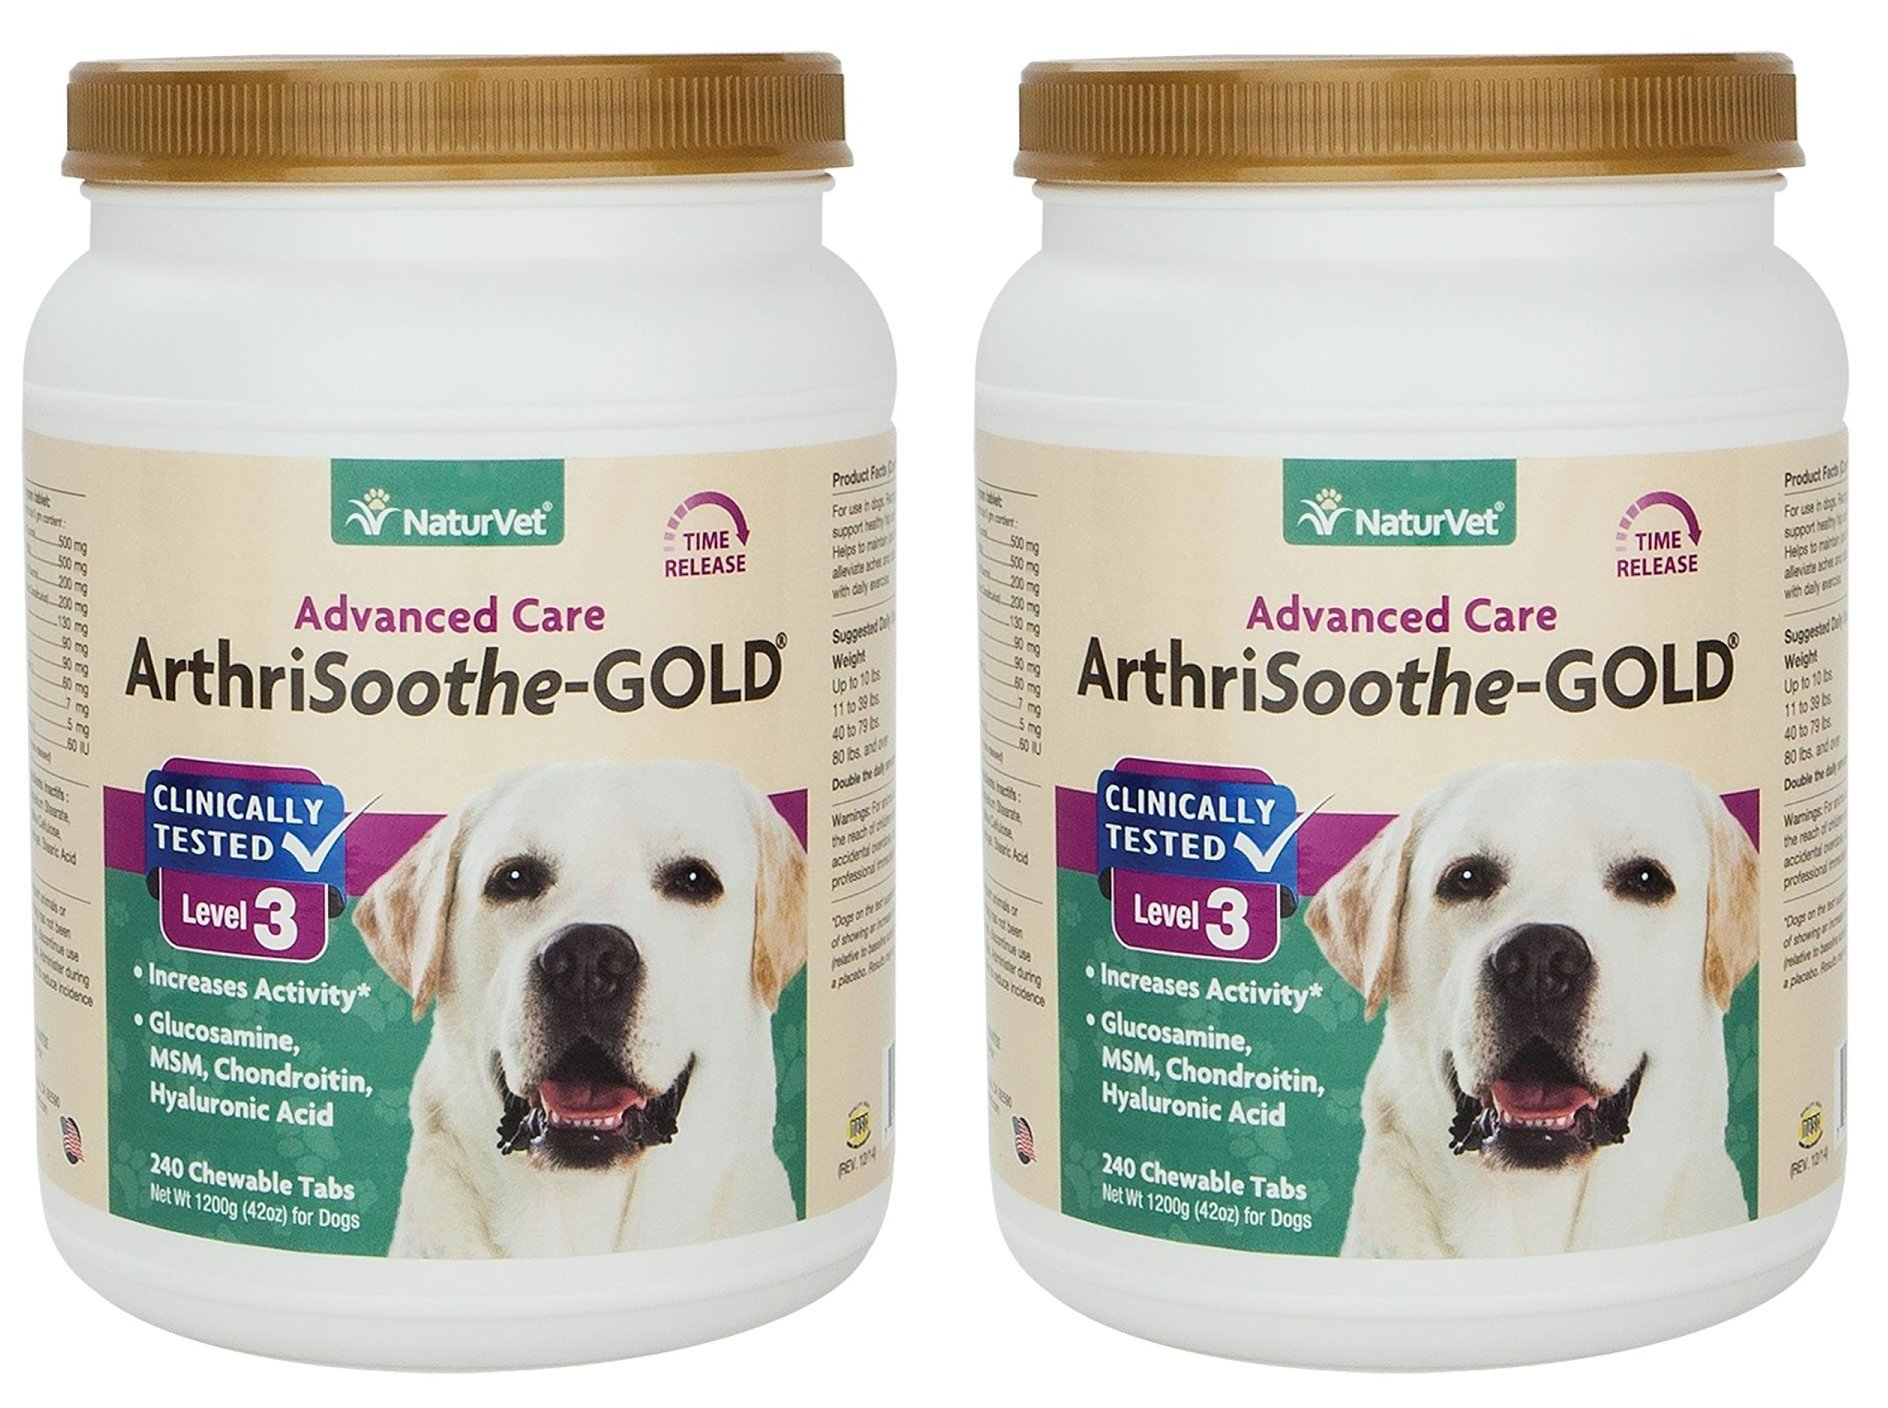 480-Count NaturVet ArthriSoothe-GOLD Level 3 Advanced Joint Care Chewable Tablets for Dogs and Cats (2 Jars with 240 Chews Each)